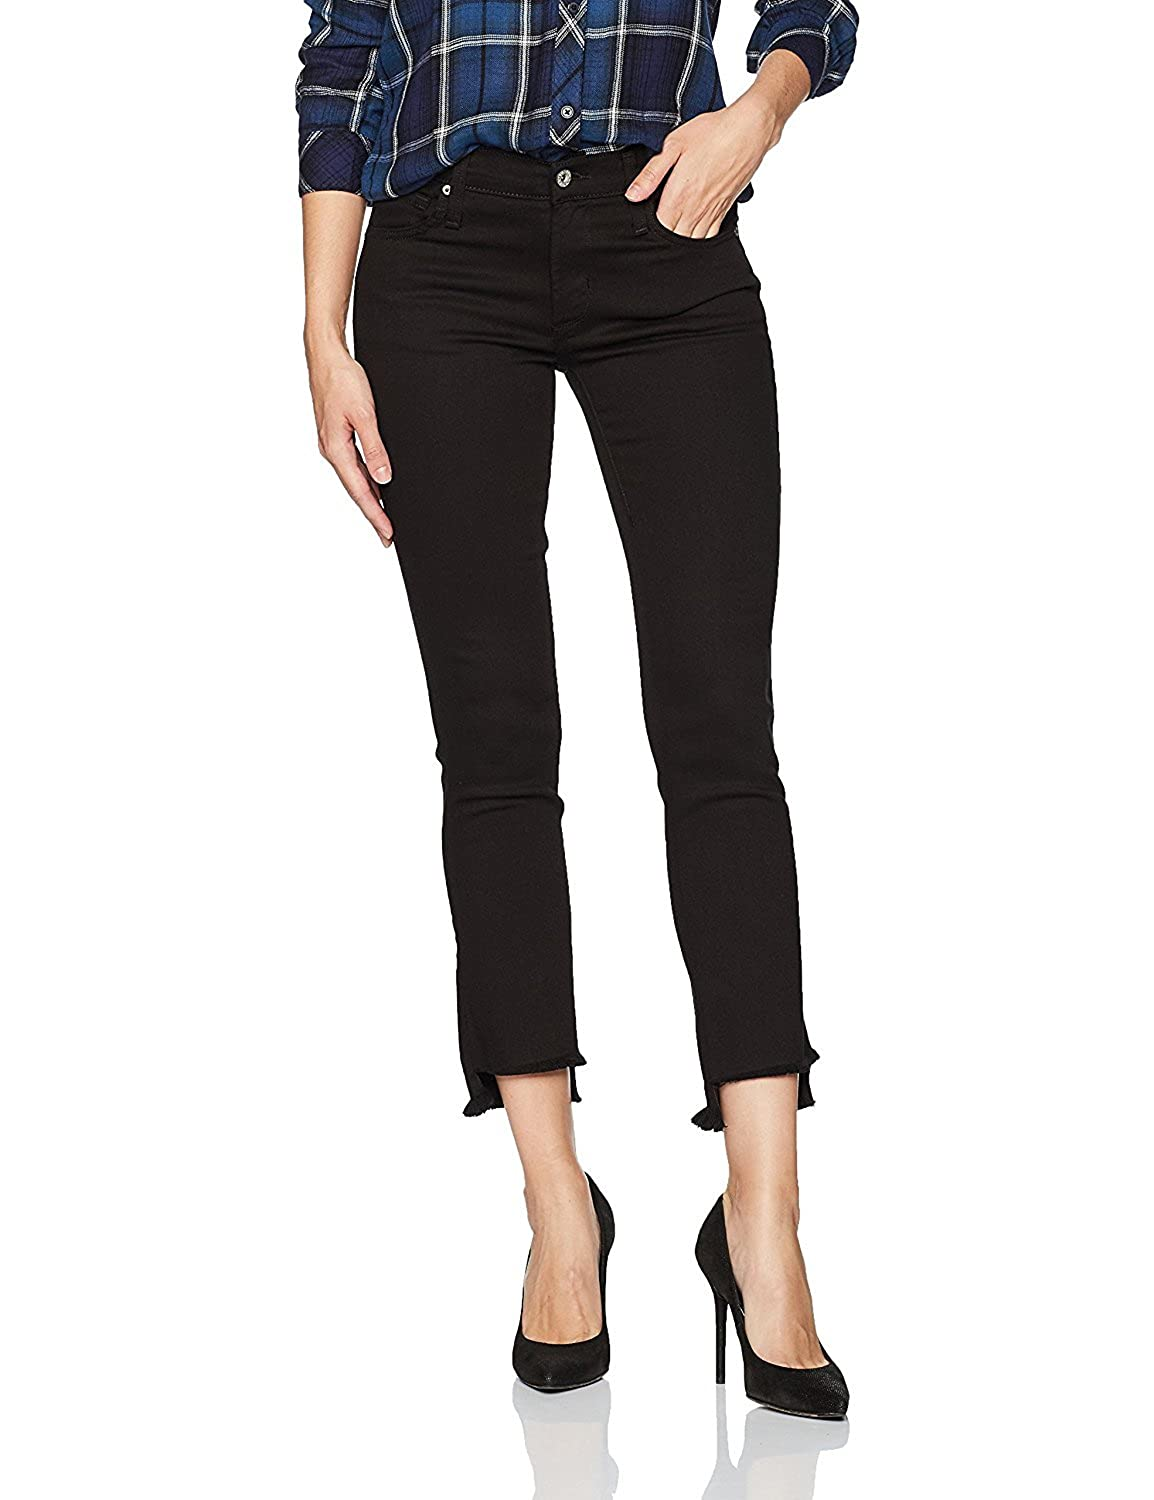 James Jeans Women's Straight Leg Jean with Hi Lo Hem Flat Black 29 [並行輸入品] B075CCZX33